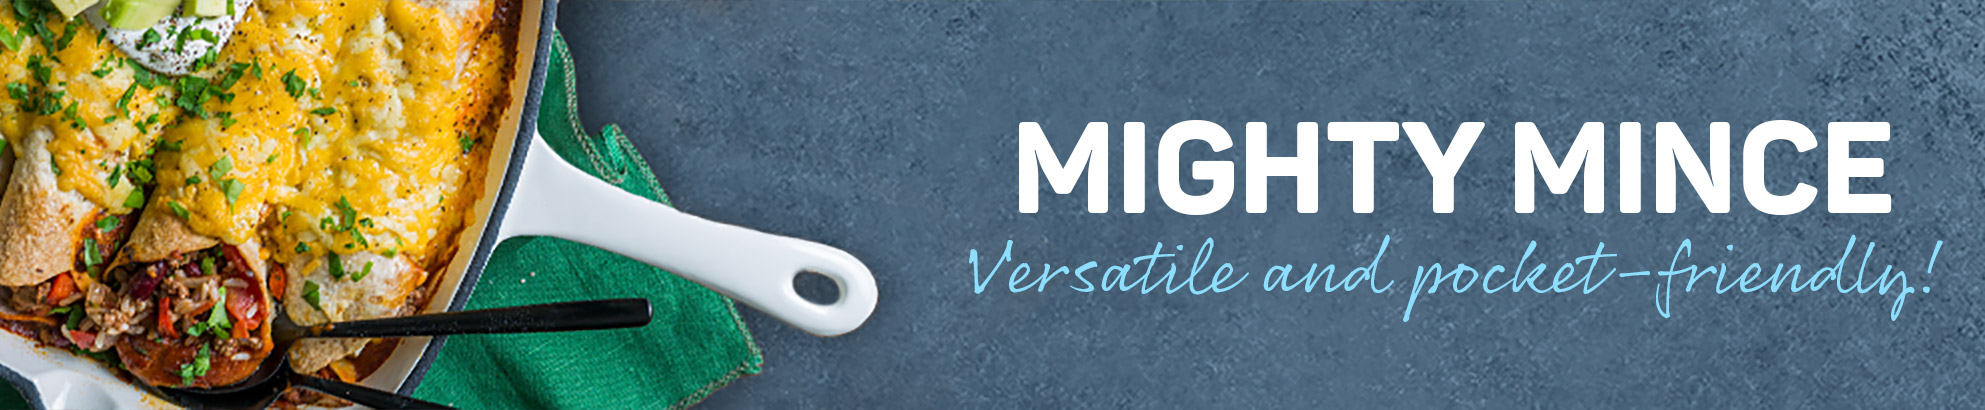 Mighty mince - Versatile and pocket-friendly!